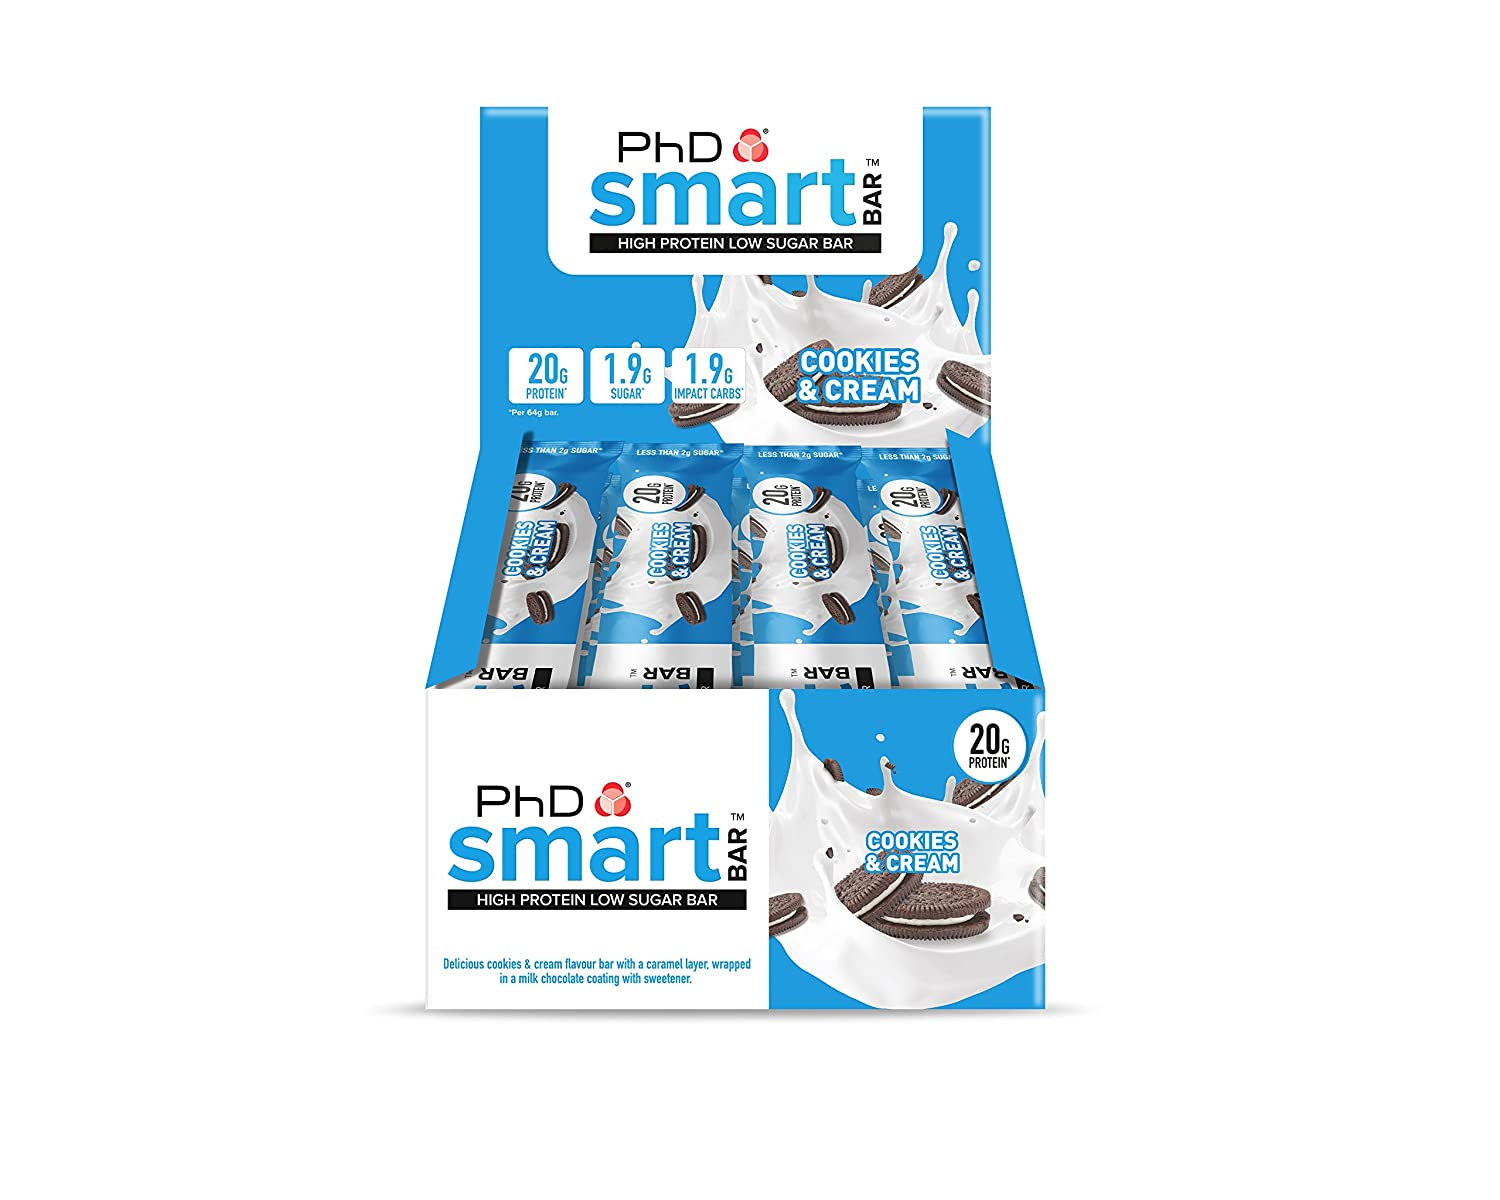 PhD Smart Bar Cookies & Cream - 12 Barras: Amazon.es: Salud y cuidado personal